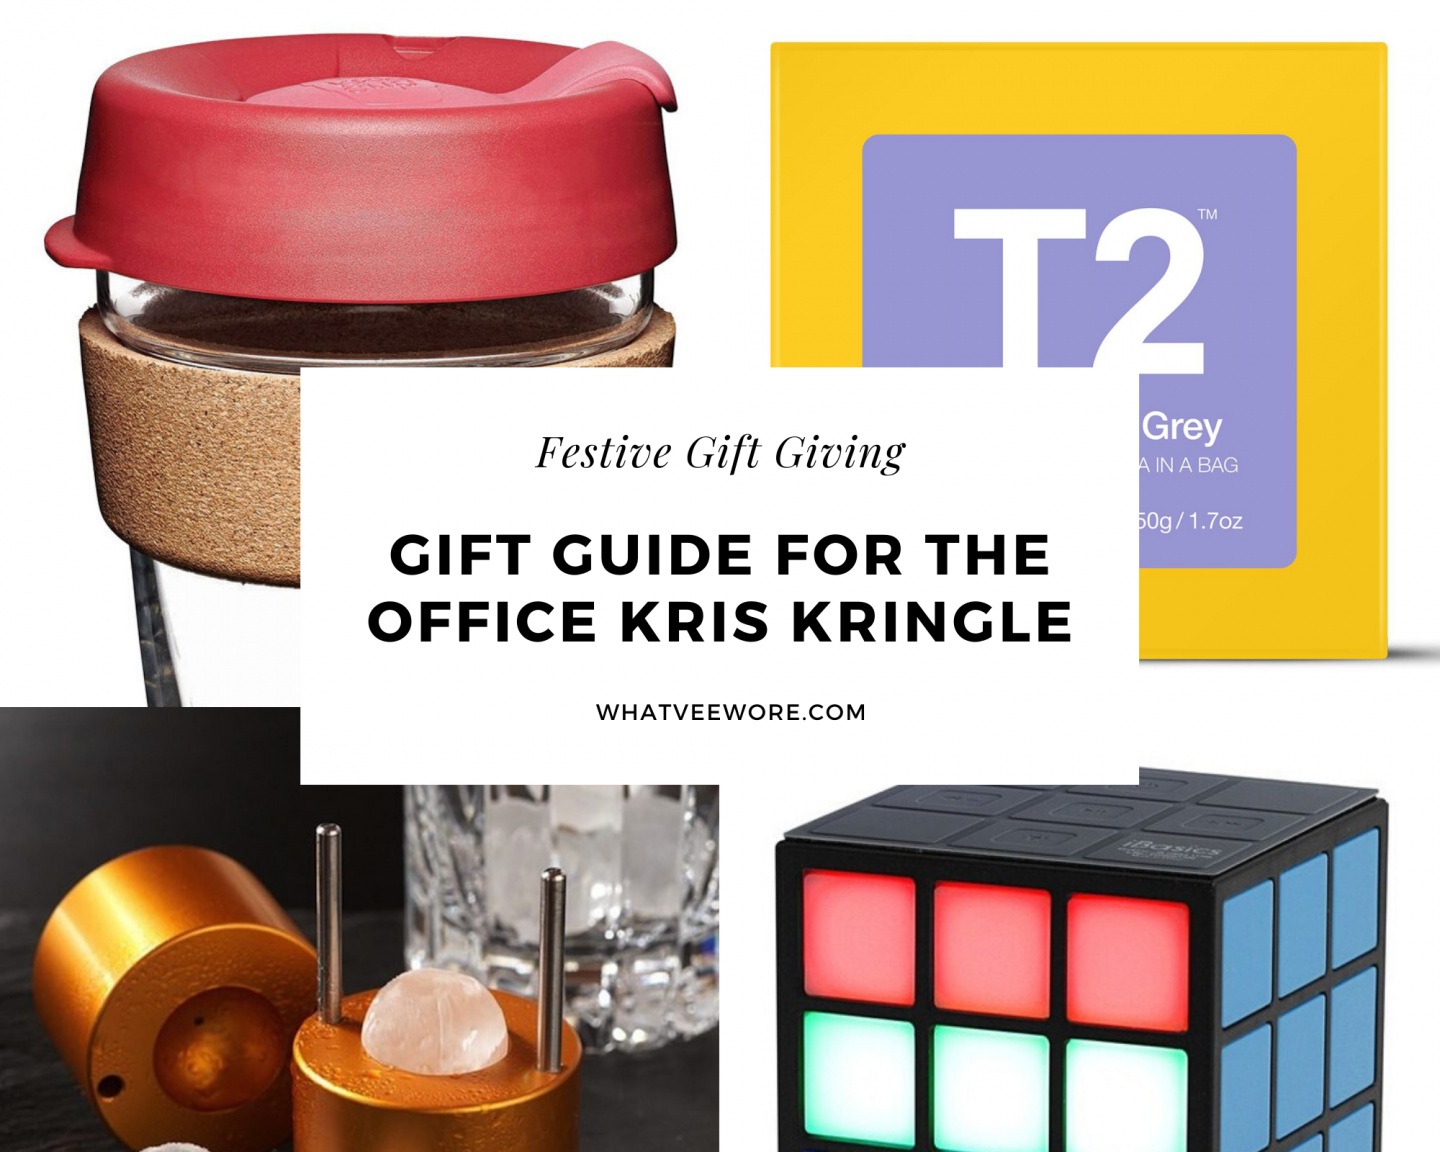 Gift Guide for the Office Kris Kringle